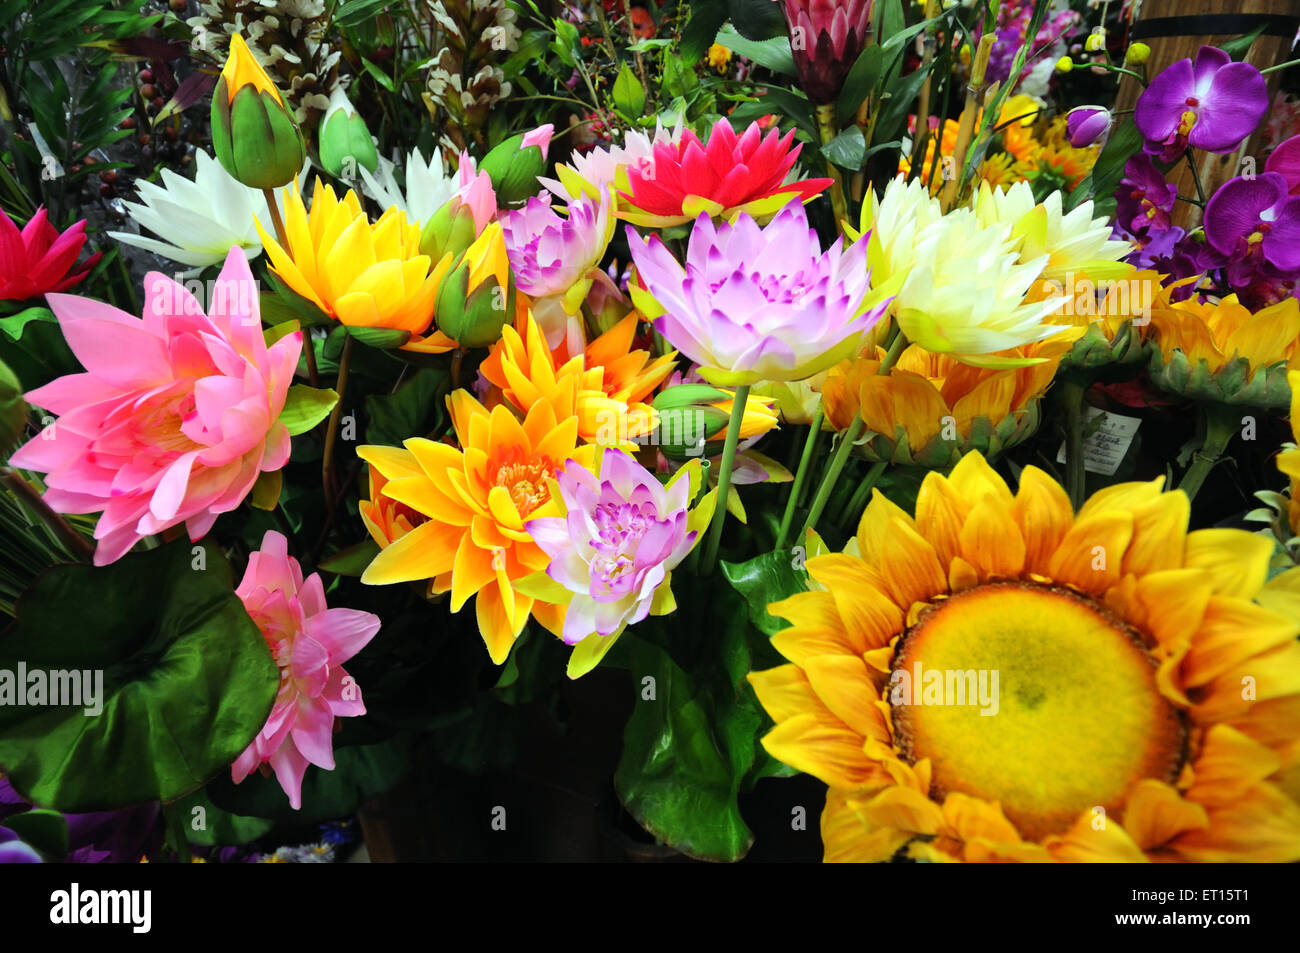 Display Of Artificial Flowers In Chinese Shop Yiwu China Stock